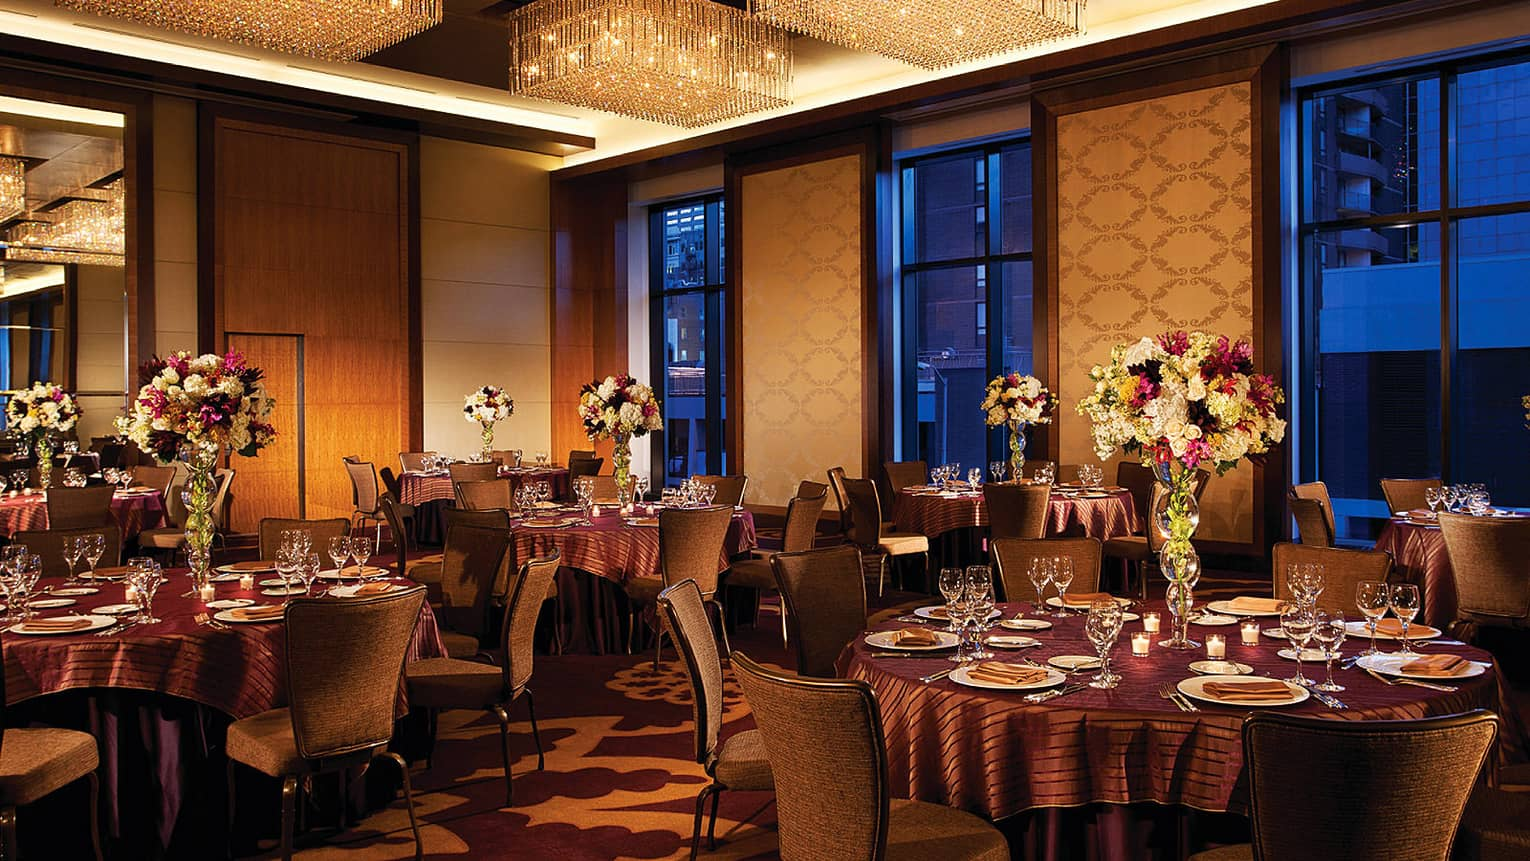 Grand Ballroom event at night with elegant banquet tables, purple and white flowers and ceiling with lights